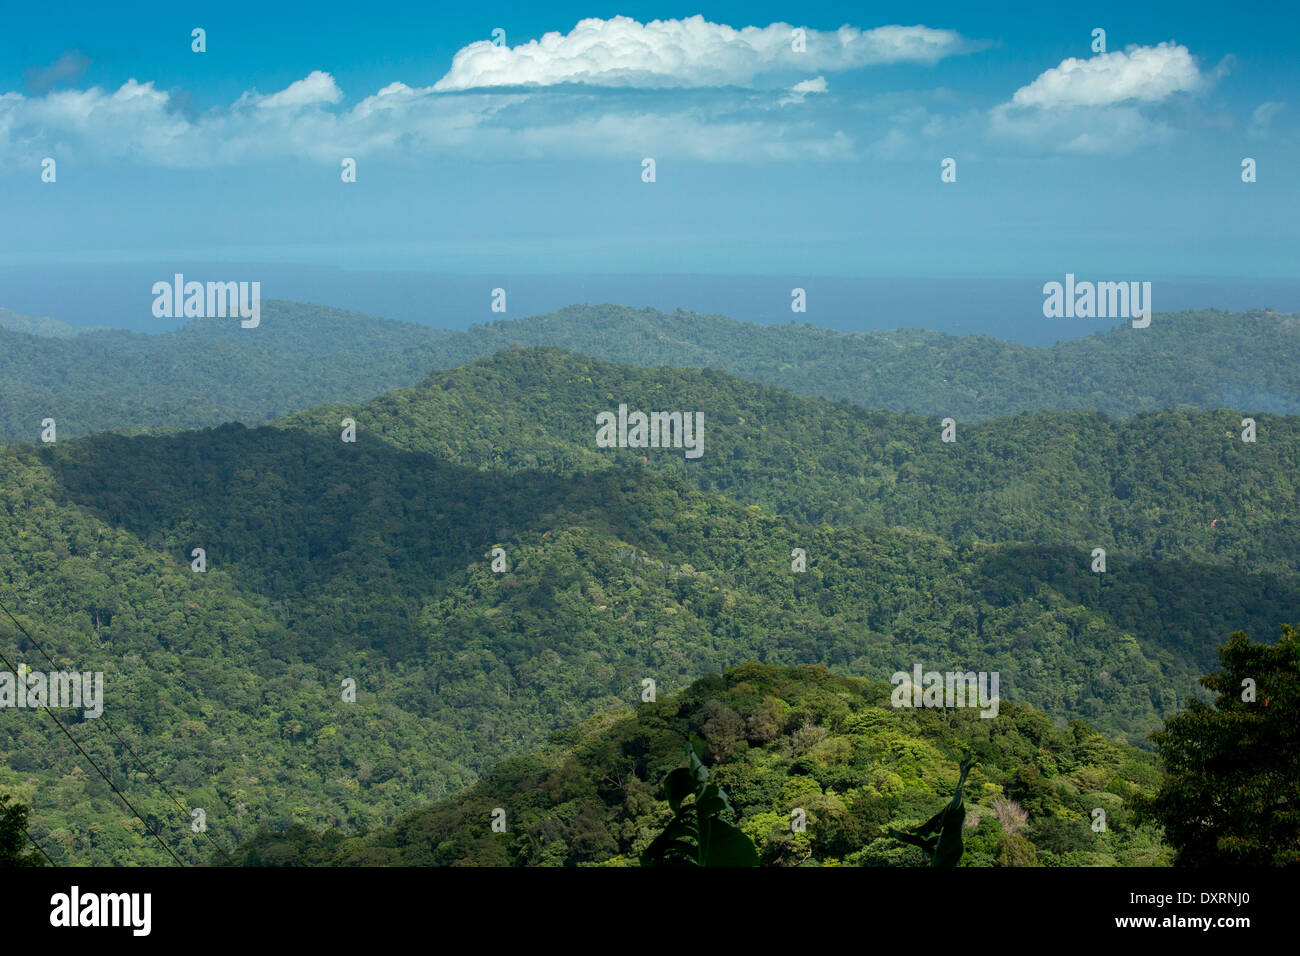 The forested protected Northern Range Mountains near Blanchisseuse, Trinidad. - Stock Image